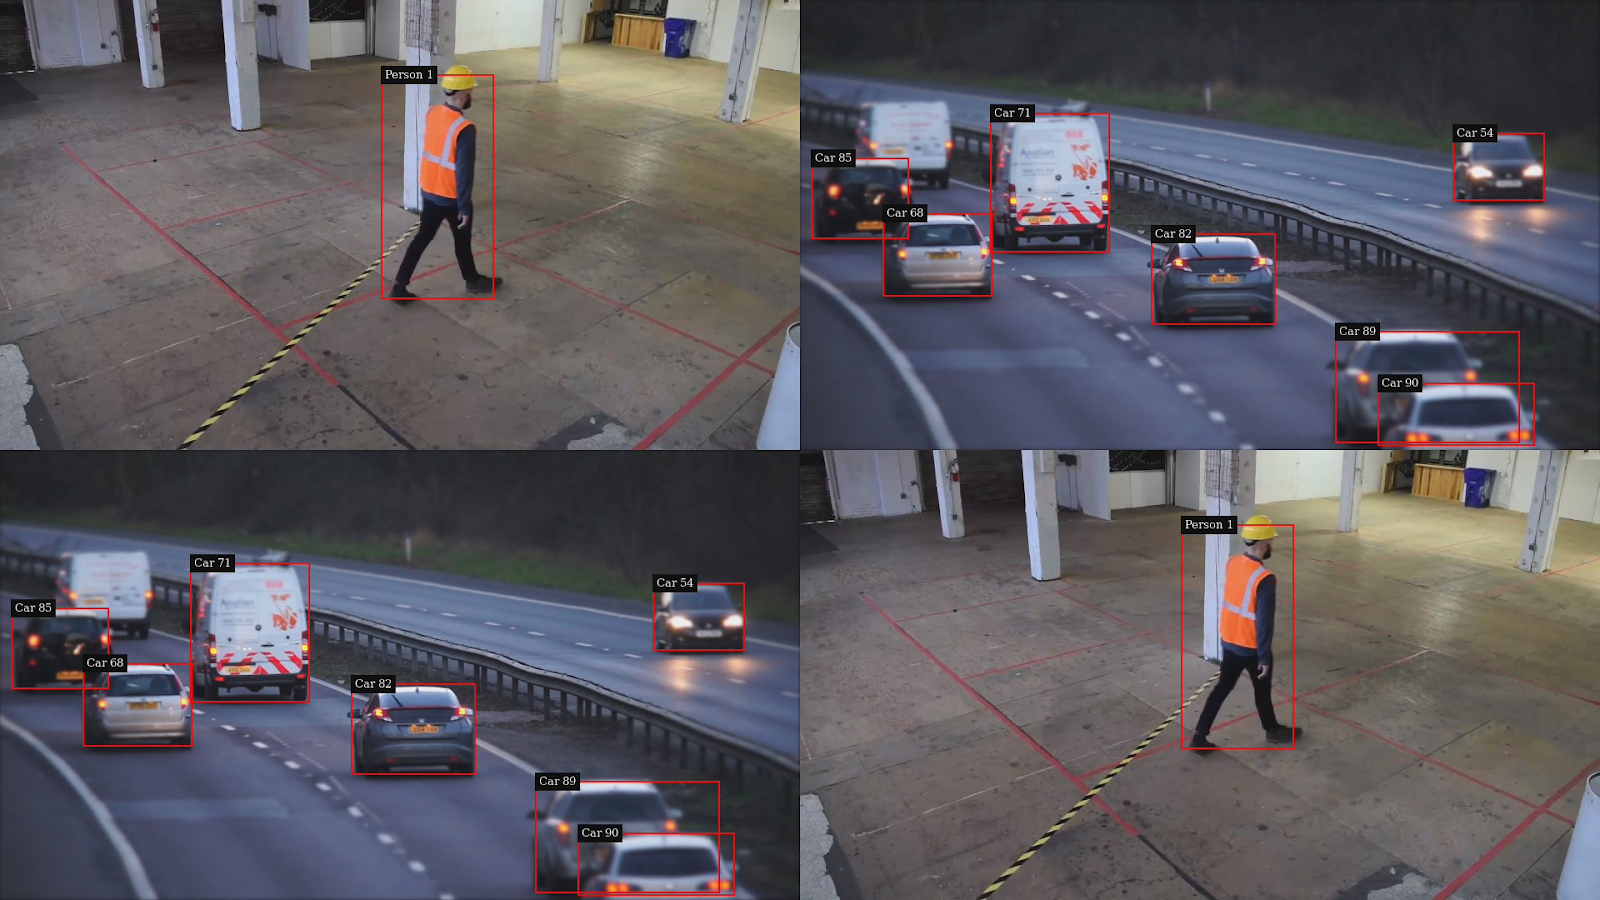 A snapshot taken by the media server. The picture contains four camera captures batched in a single frame. Two show a worker walking around a restricted area and a bounding box around the worker labelled as person. The other two show a highway with several cars enclosed in bounding boxes labelled as car.